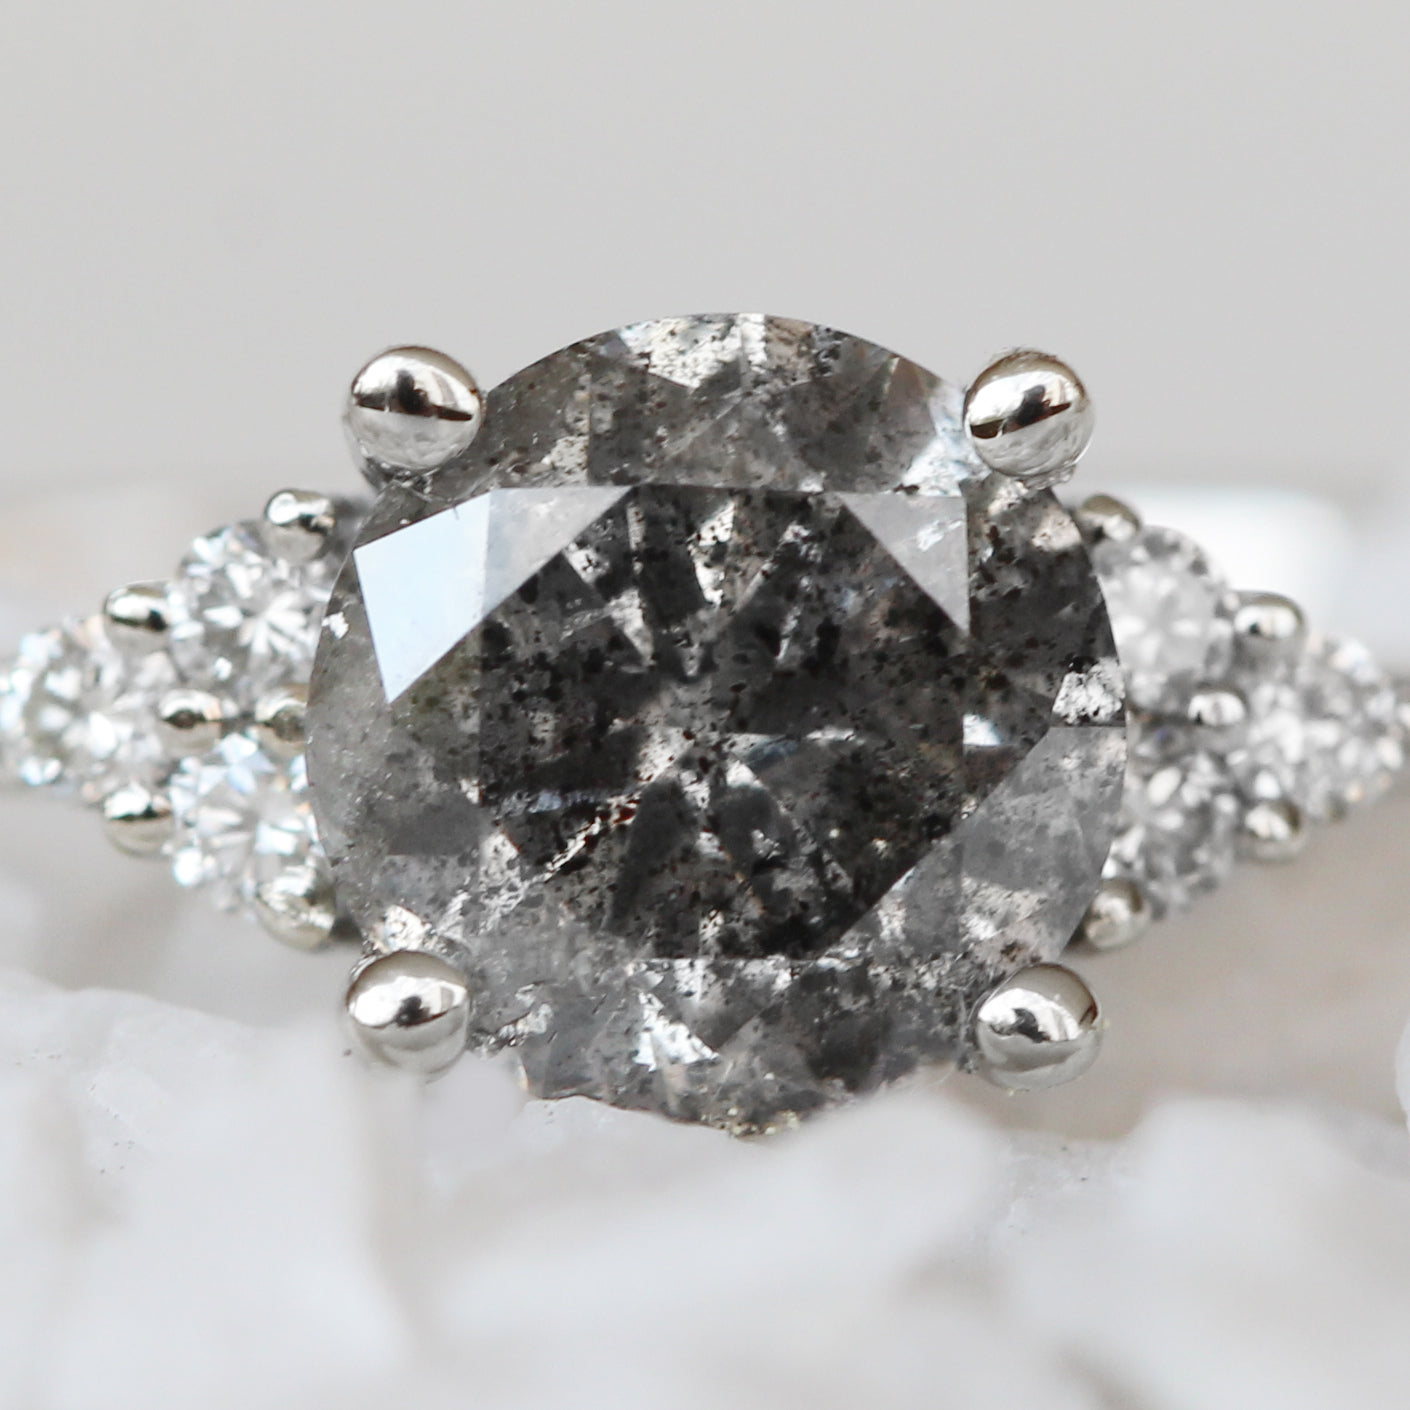 Imogene Ring with a .77 Carat Celestial Diamond and White Accent Diamonds in 10K White Gold - Ready to size and ship - Midwinter Co. Alternative Bridal Rings and Modern Fine Jewelry